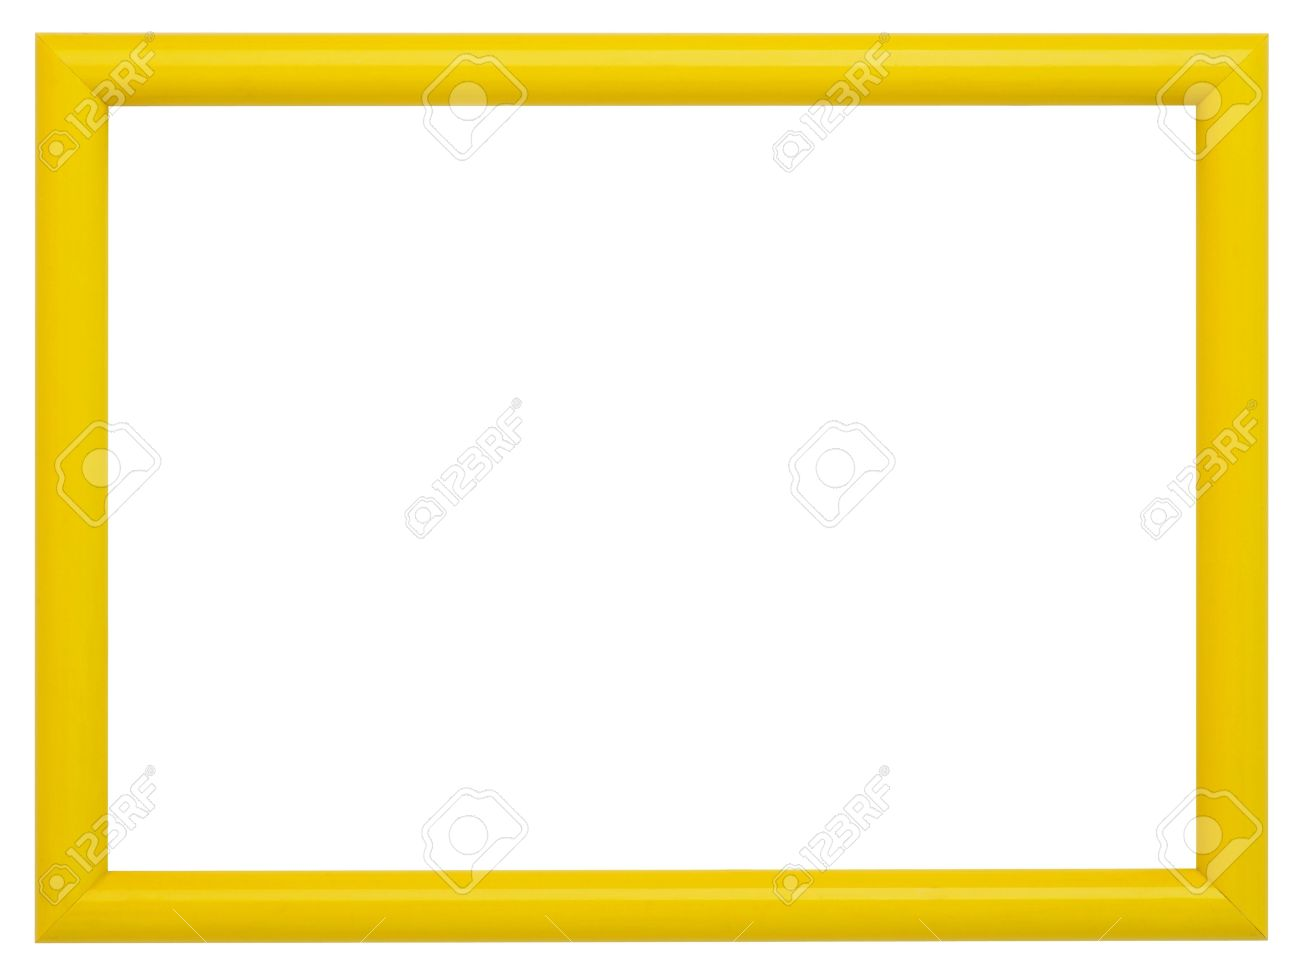 stock photo yellow frame isolated on white background